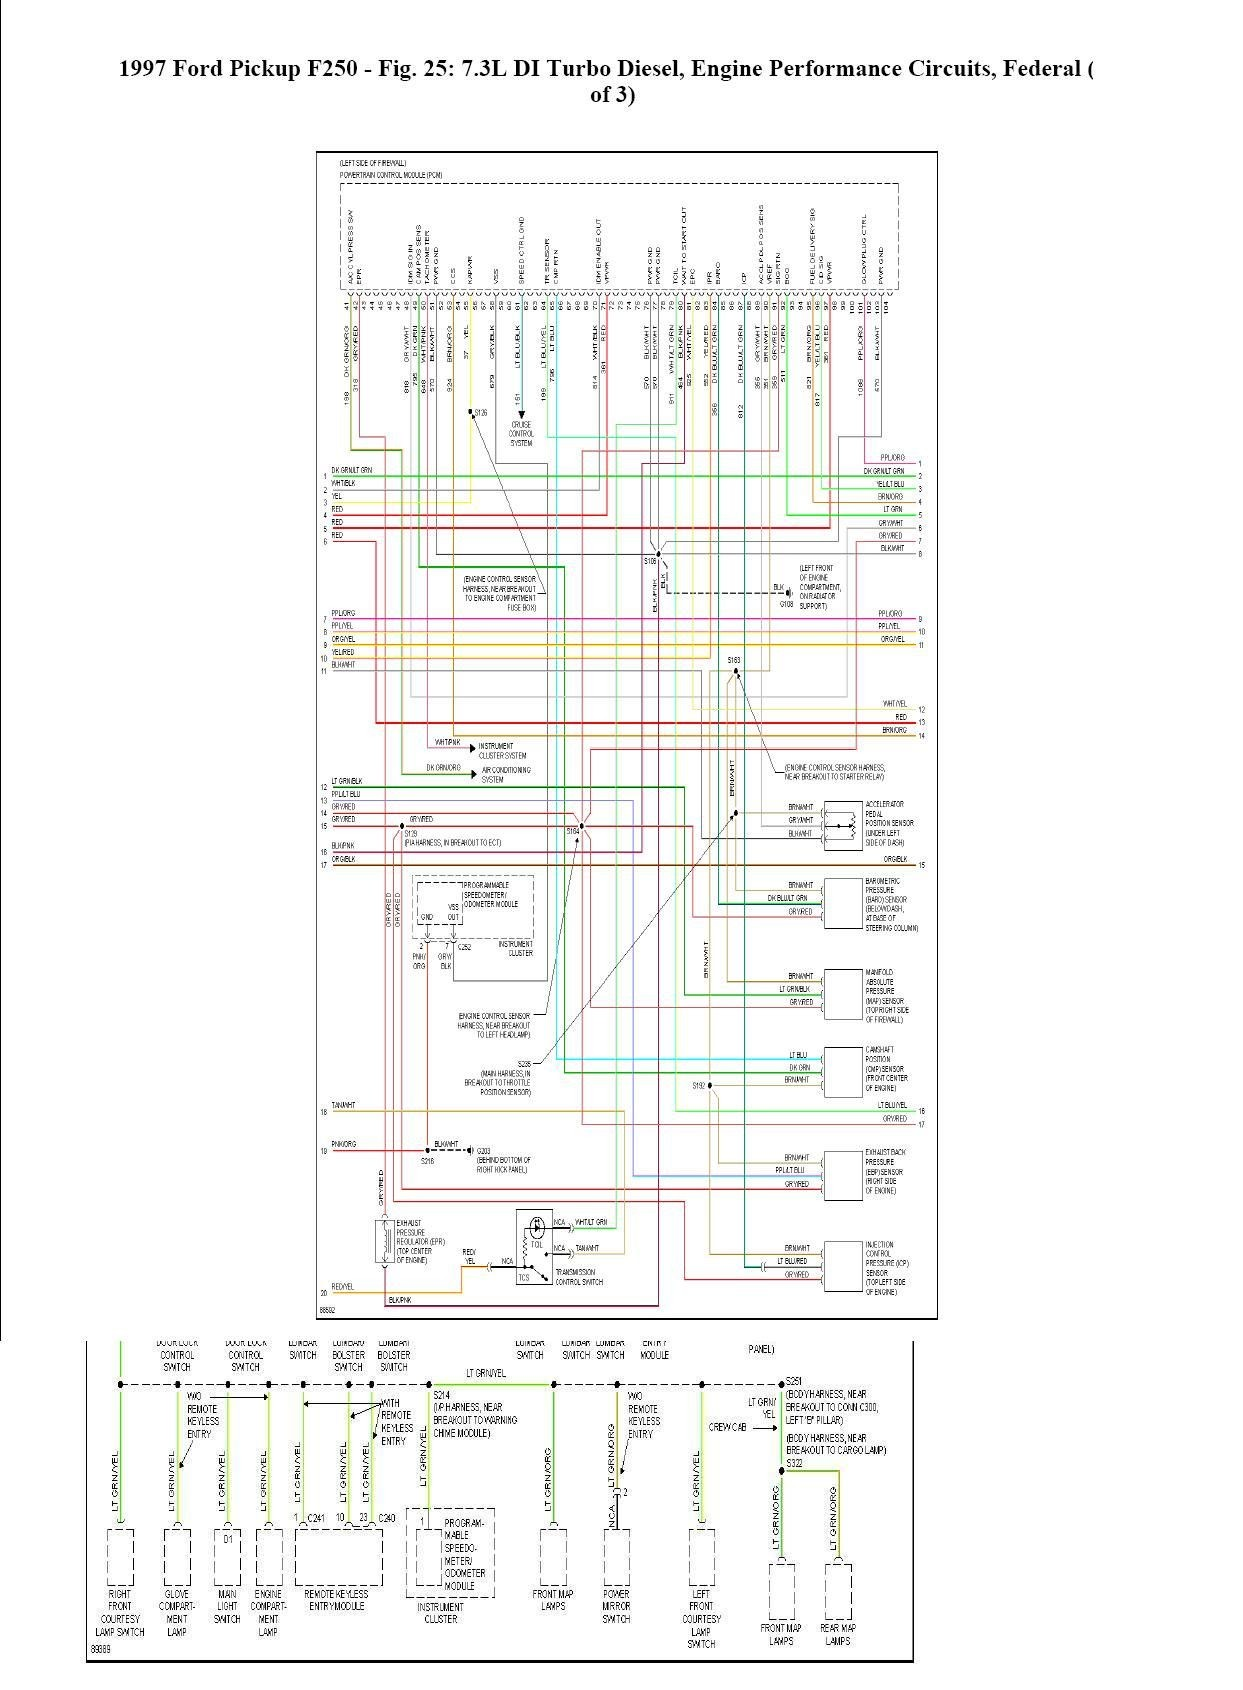 Simple Diesel Engine Diagram 97 ford F 350 7 3 Diesel Engine Diagram Of Simple Diesel Engine Diagram 94 Windstar Wiring Diagram Wiring Diagram Datasource